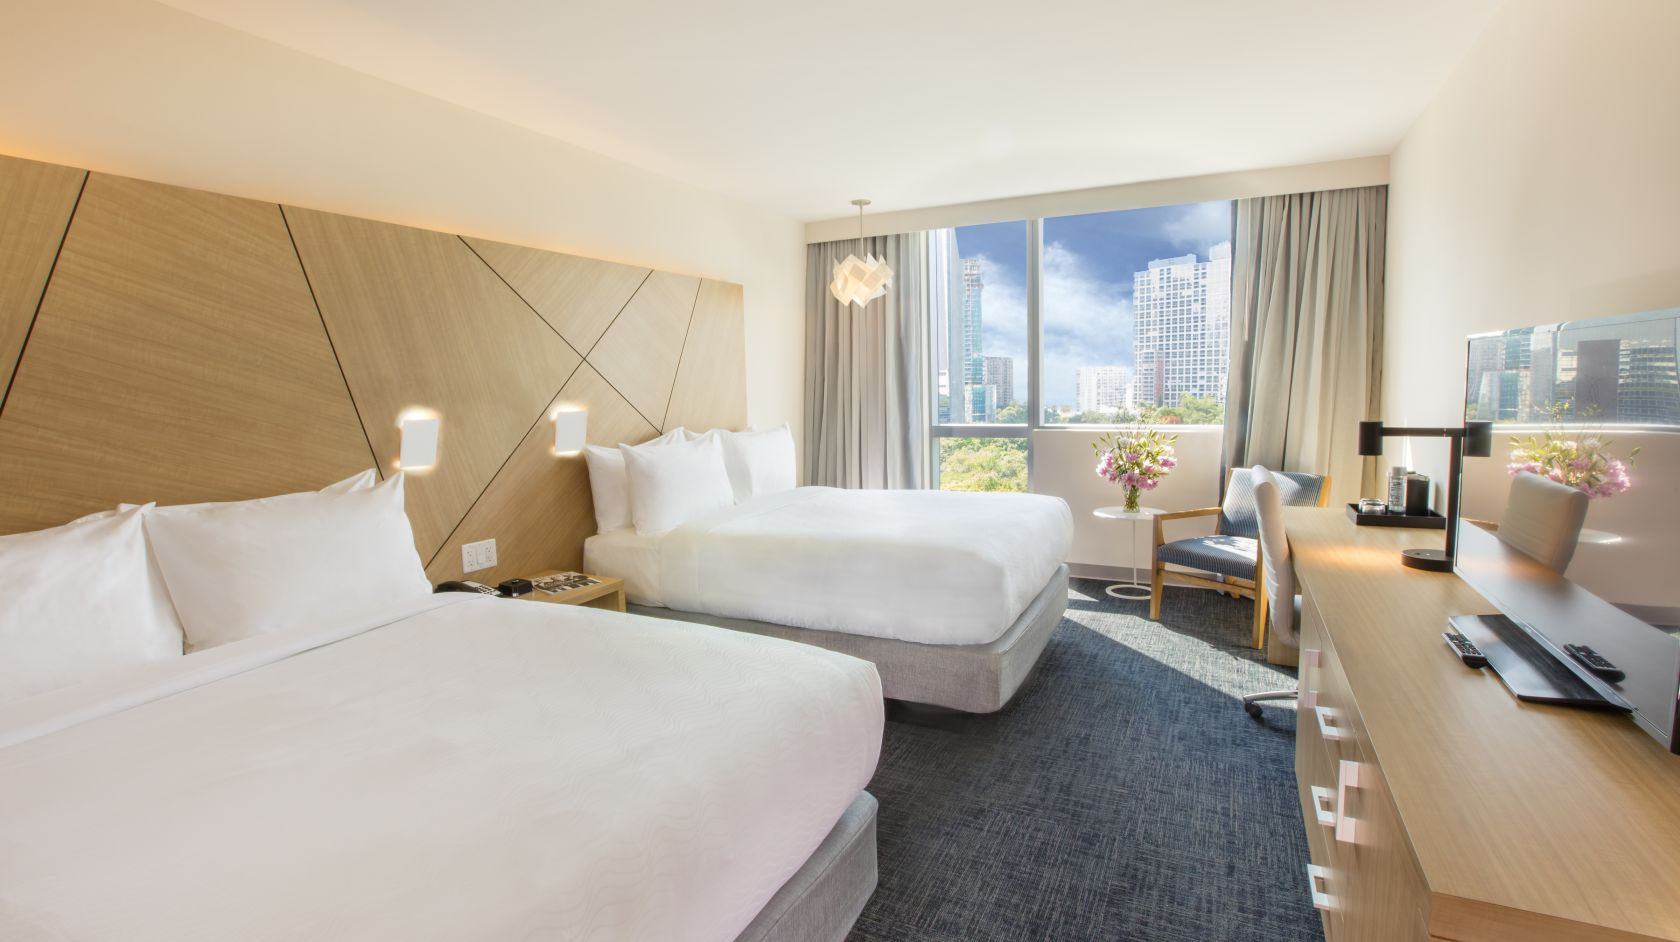 double queen room at Atton Brickell Miami Hotel